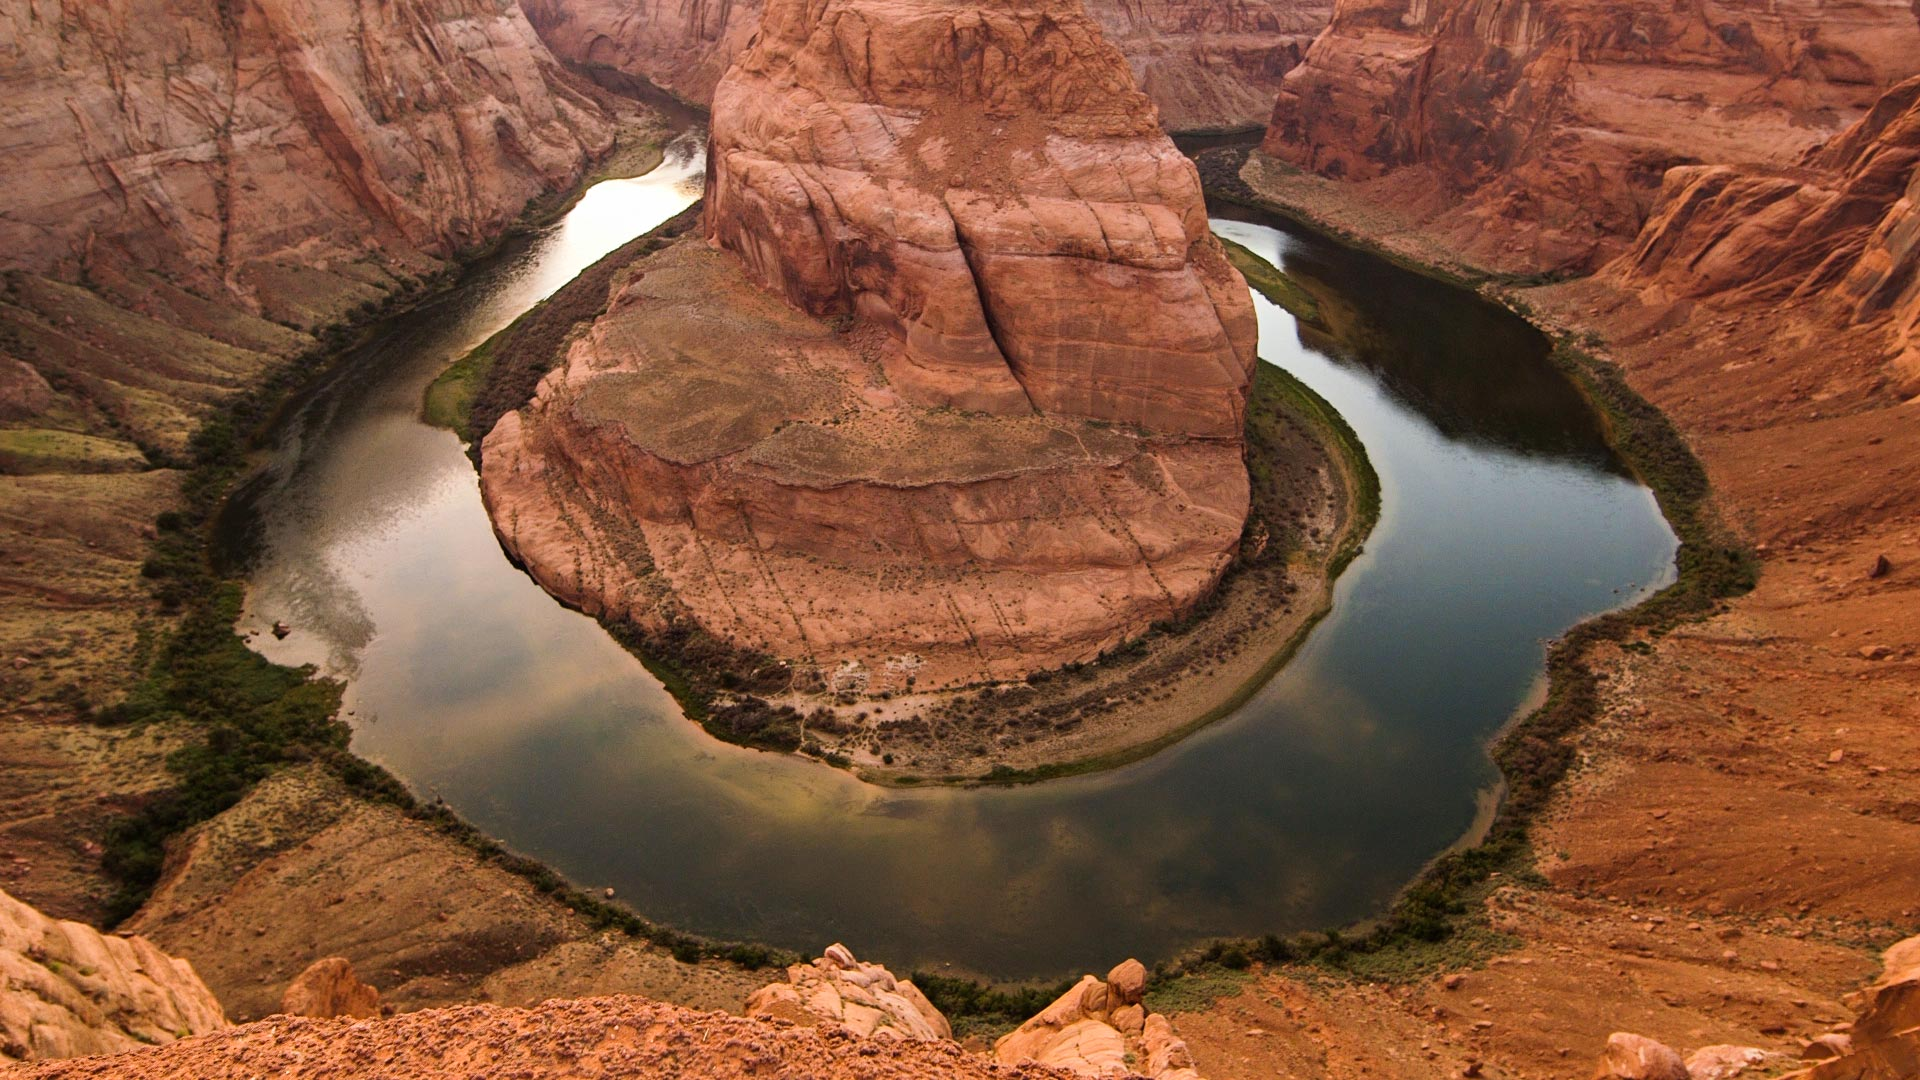 Horseshoe bend hero